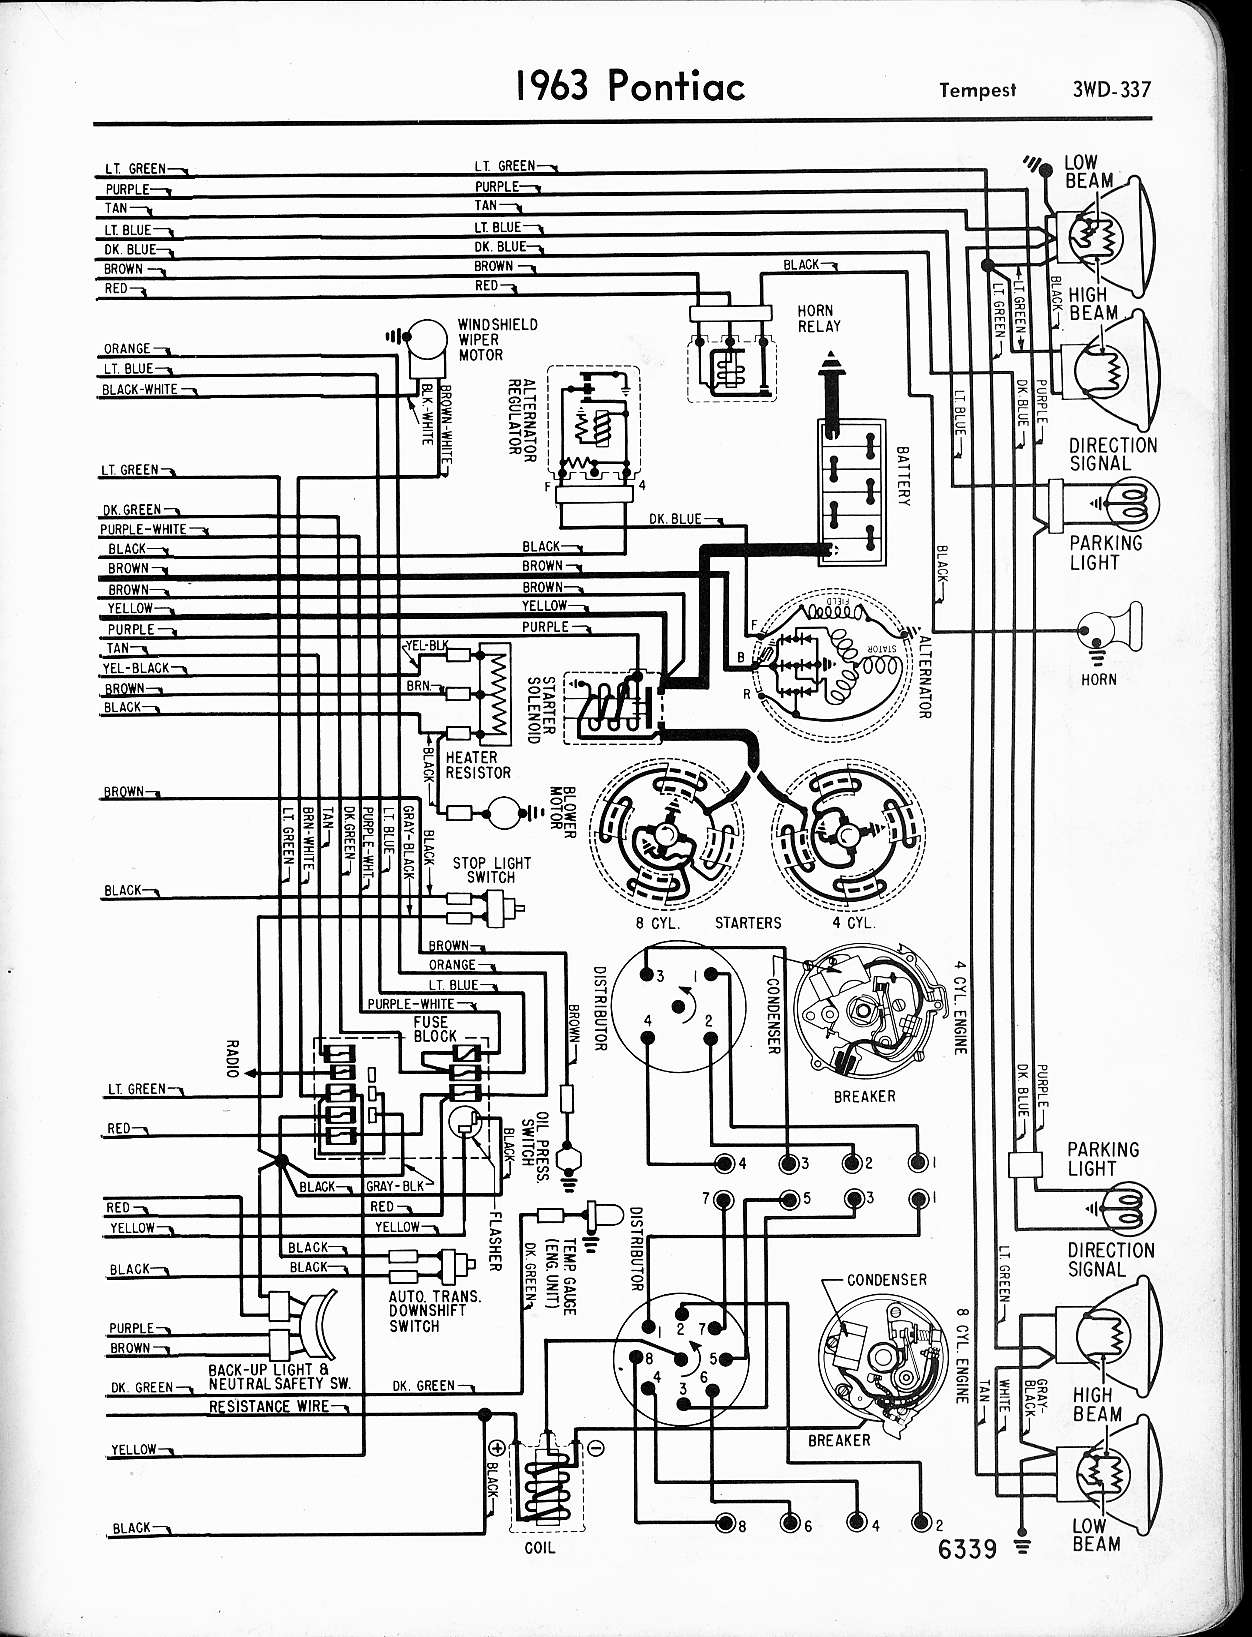 1967 gto horn wiring diagram schematic diagram  70 mustang horn wiring diagram best wiring library 1968 chevy camaro wiring diagram 1963 tempest wiring